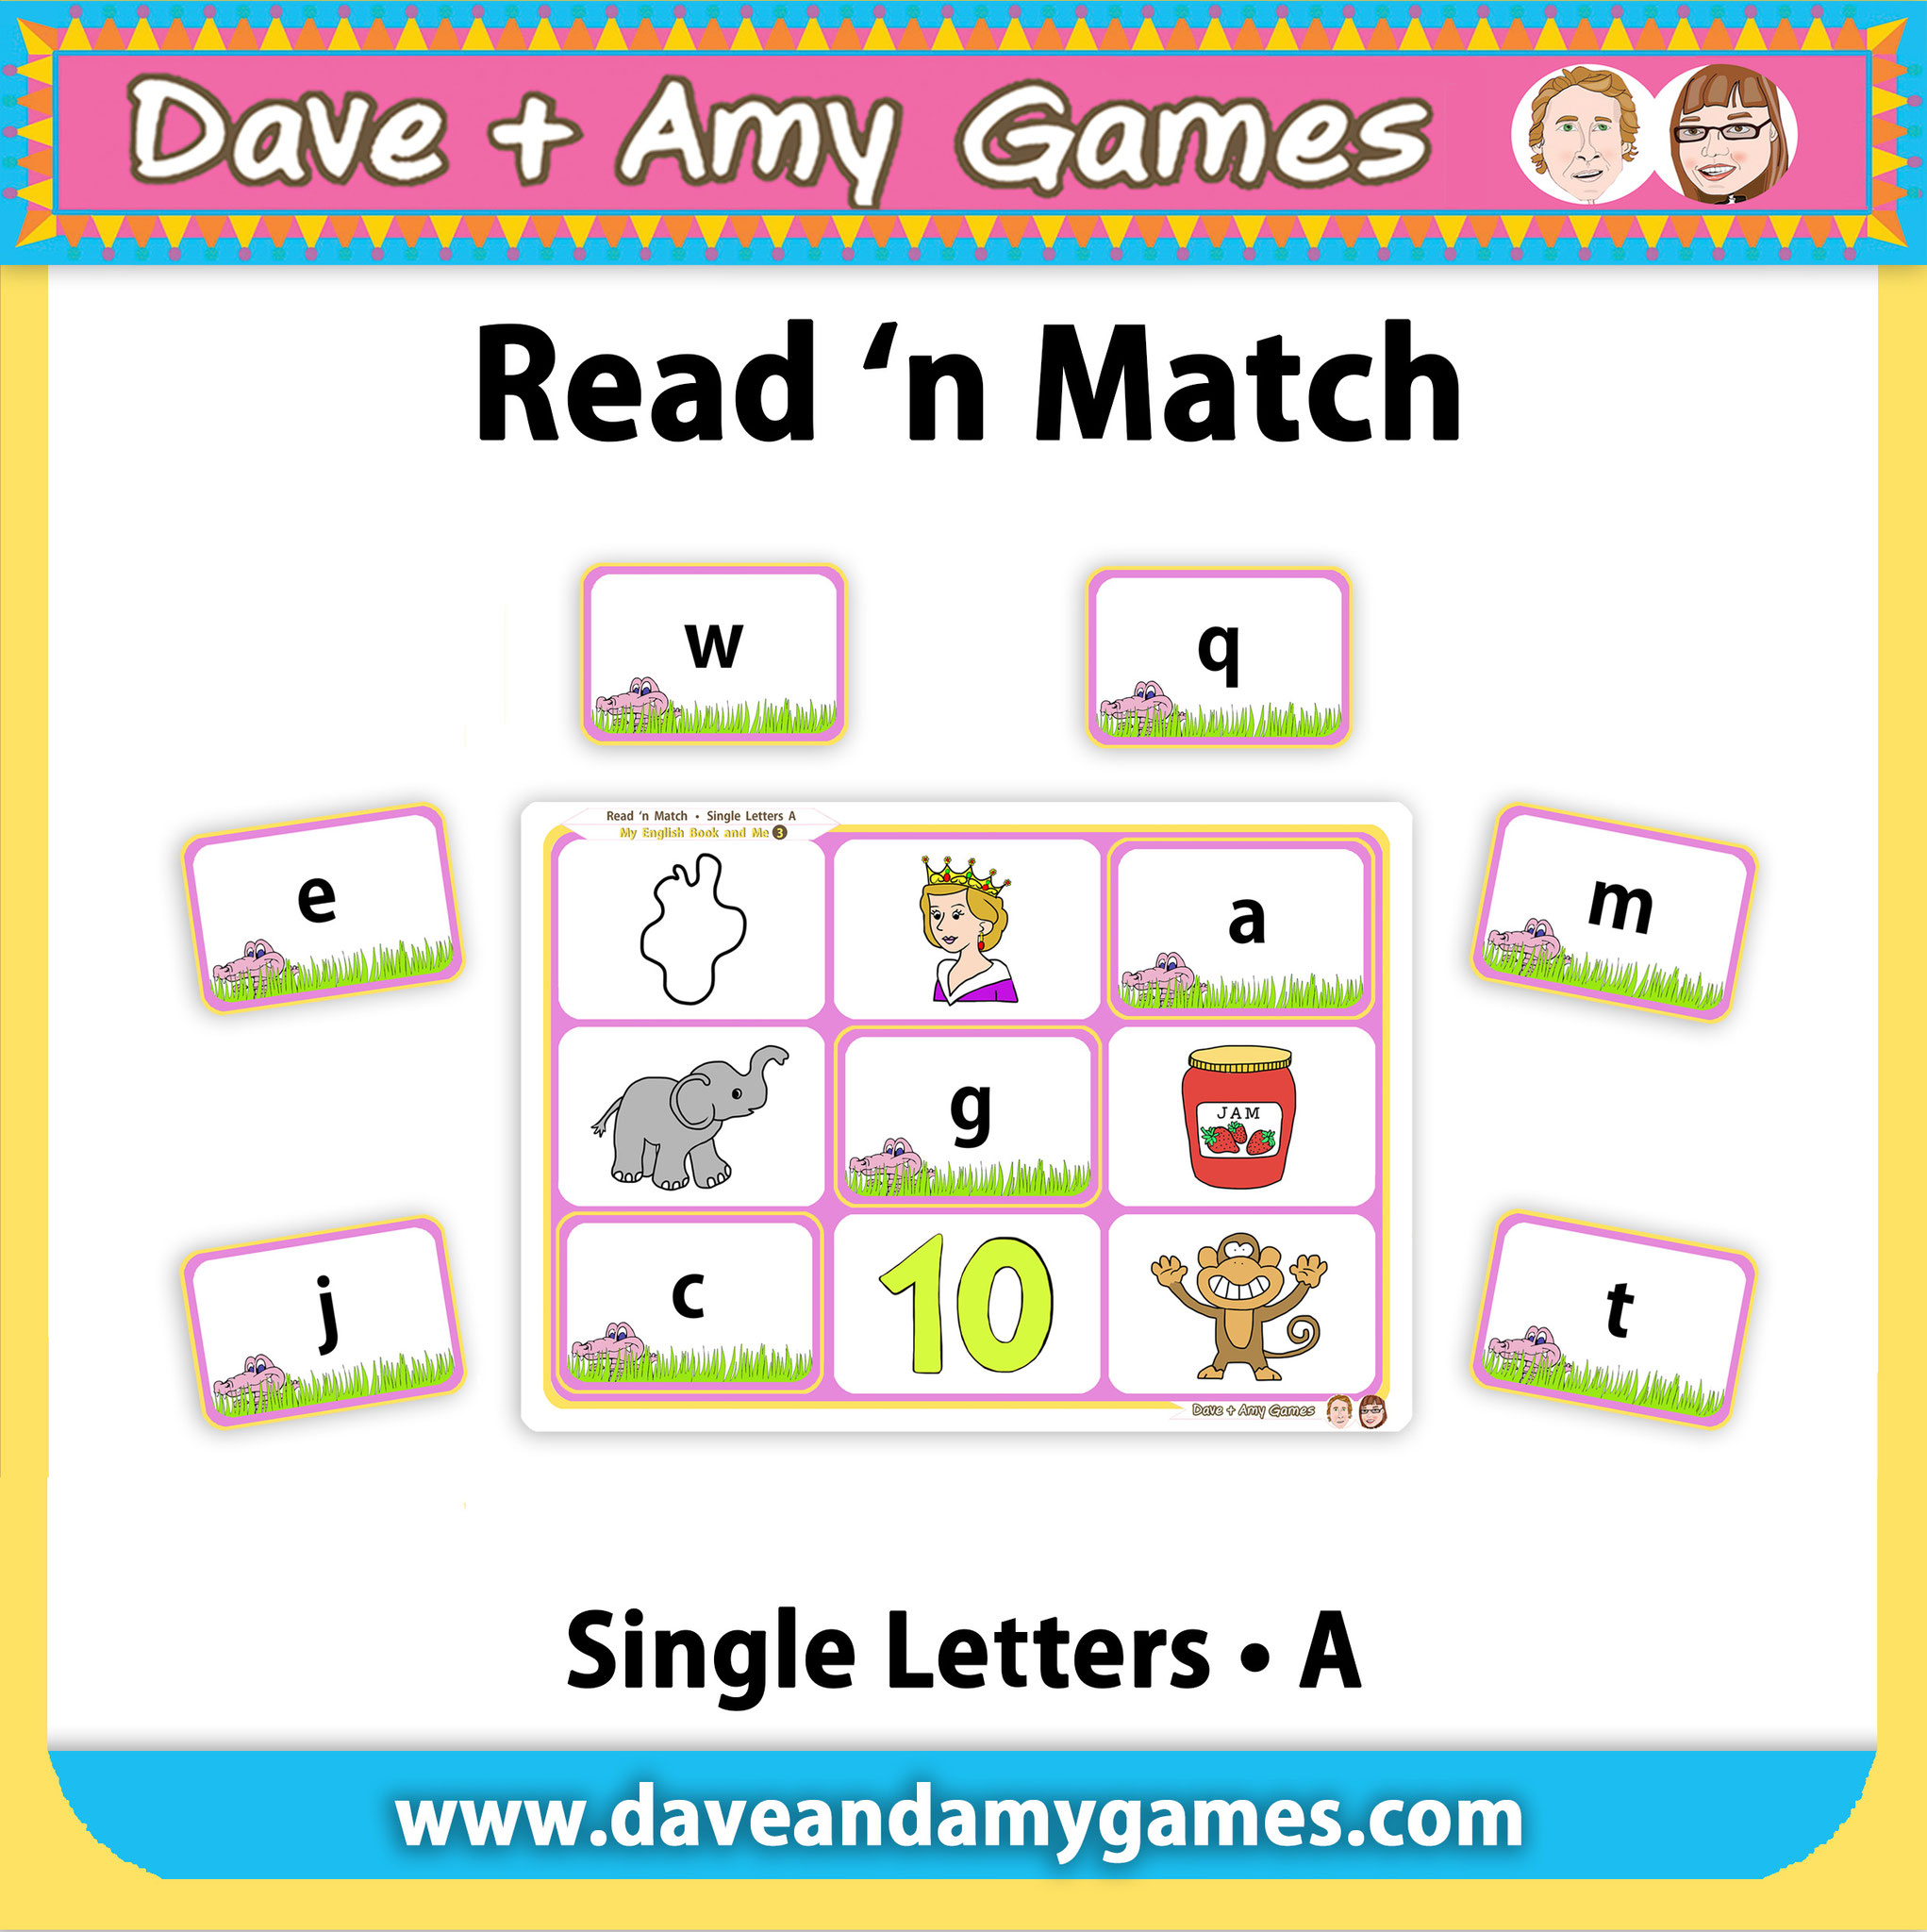 Read 'n Match (4 ABC Phonics Levels)